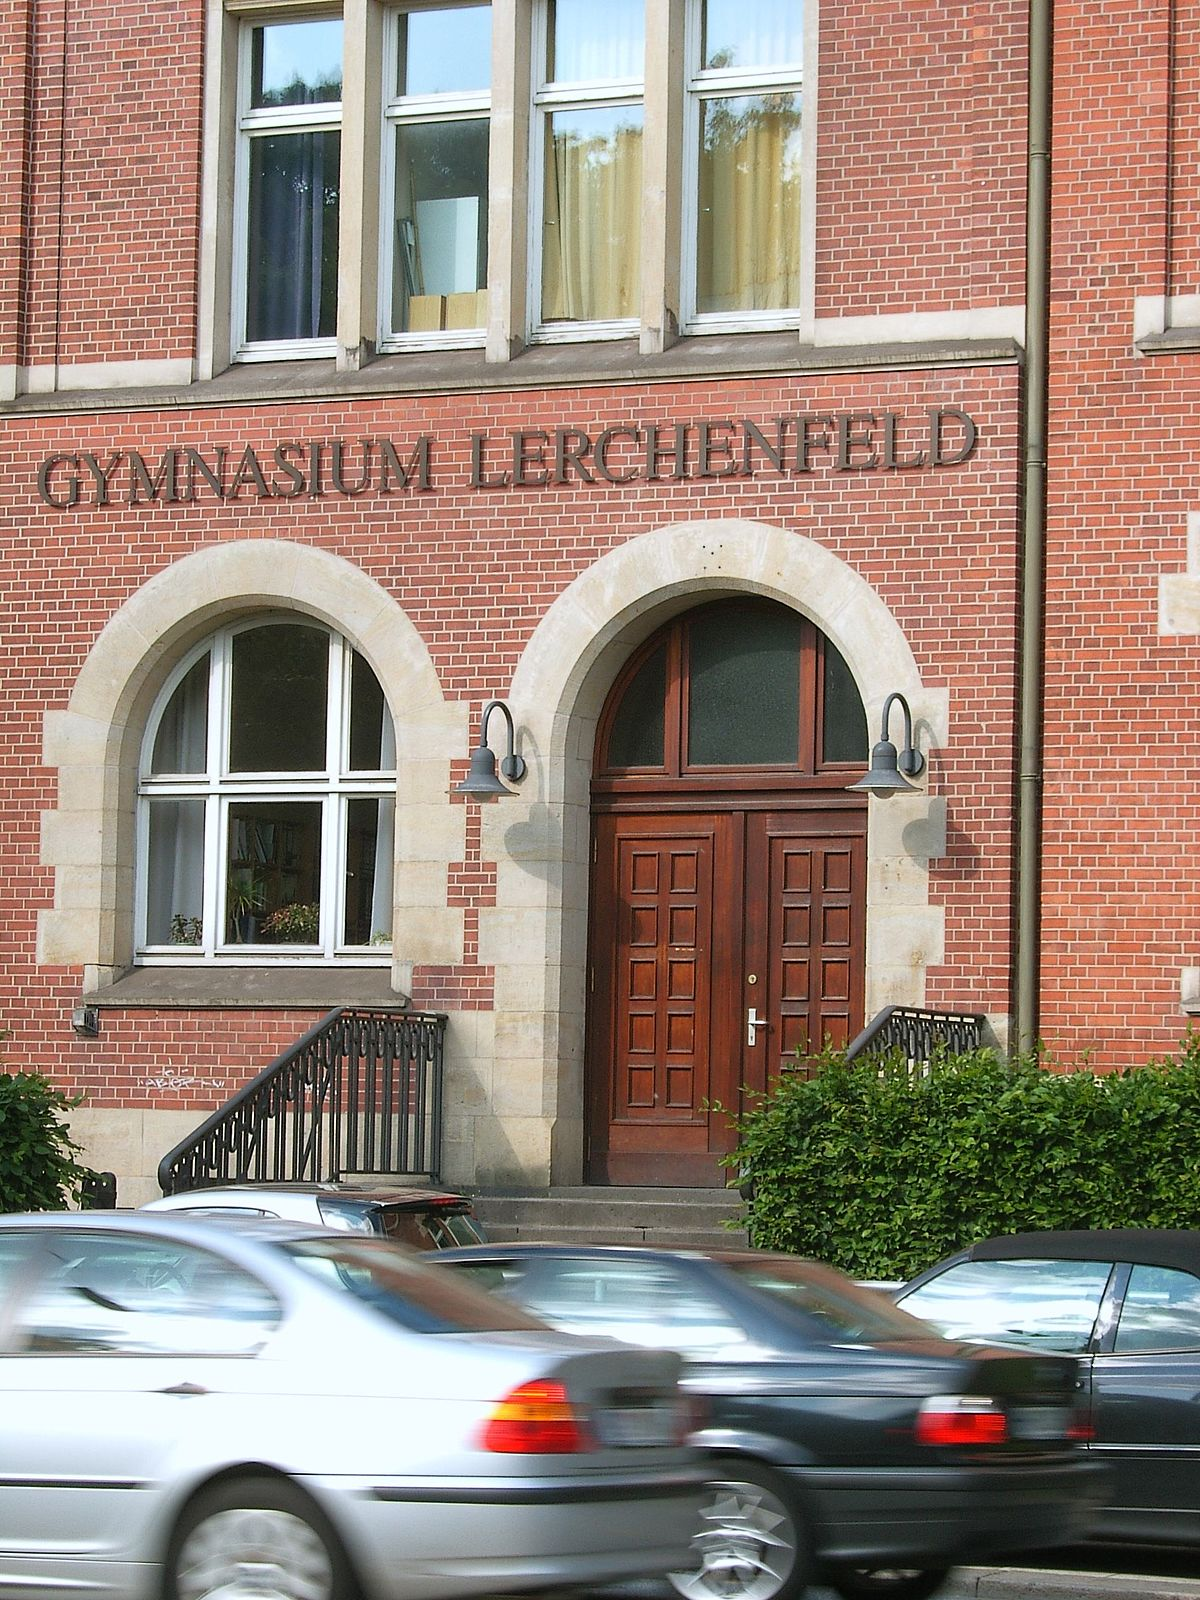 Deutsch Klasse 1 Gymnasium Lerchenfeld – Wikipedia